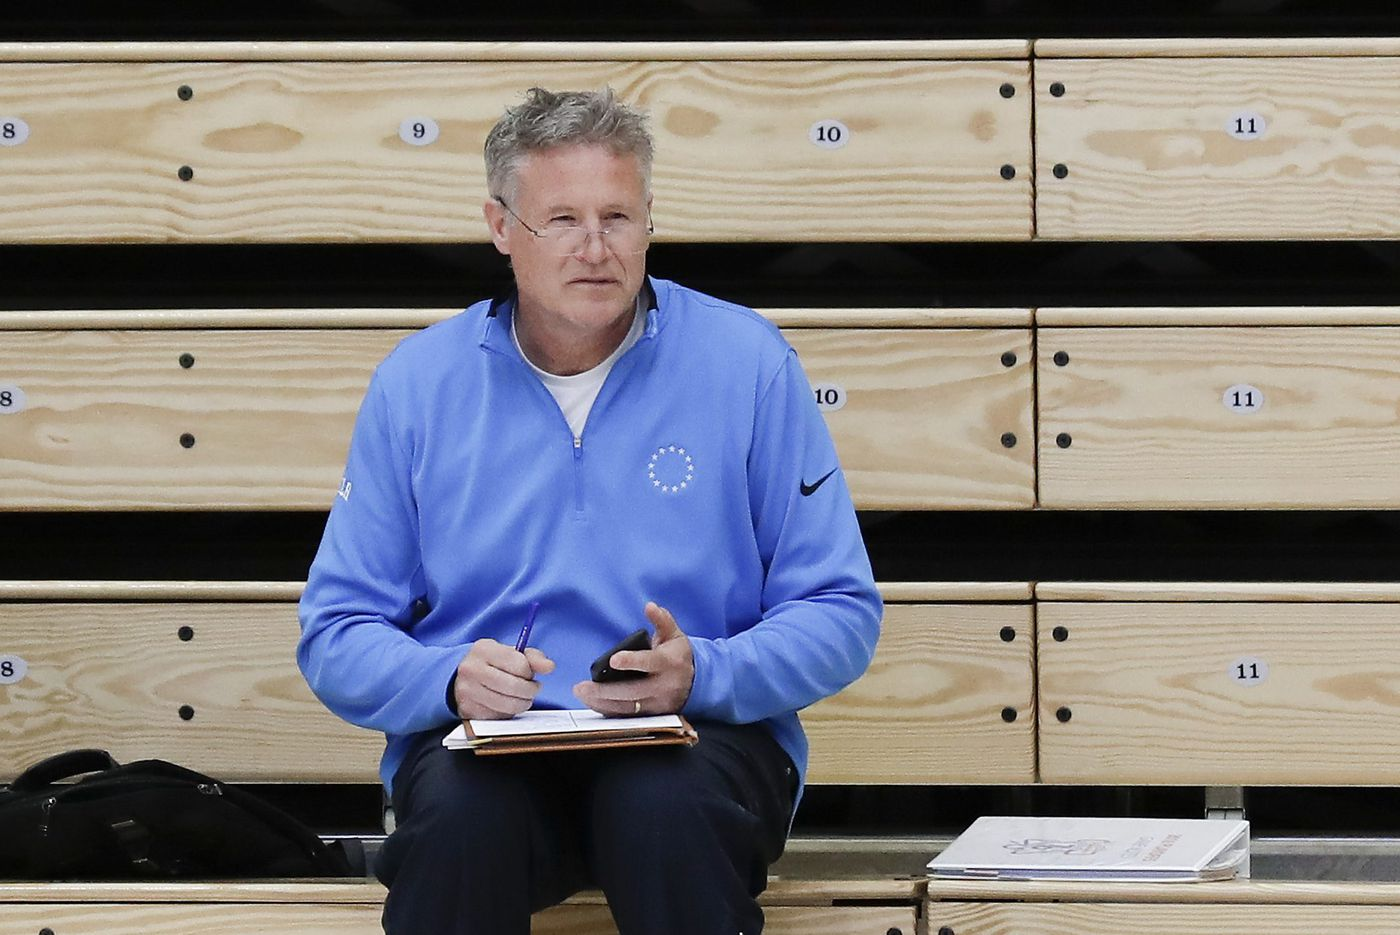 For Sixers, small moves and small progress this offseason | Bob Ford